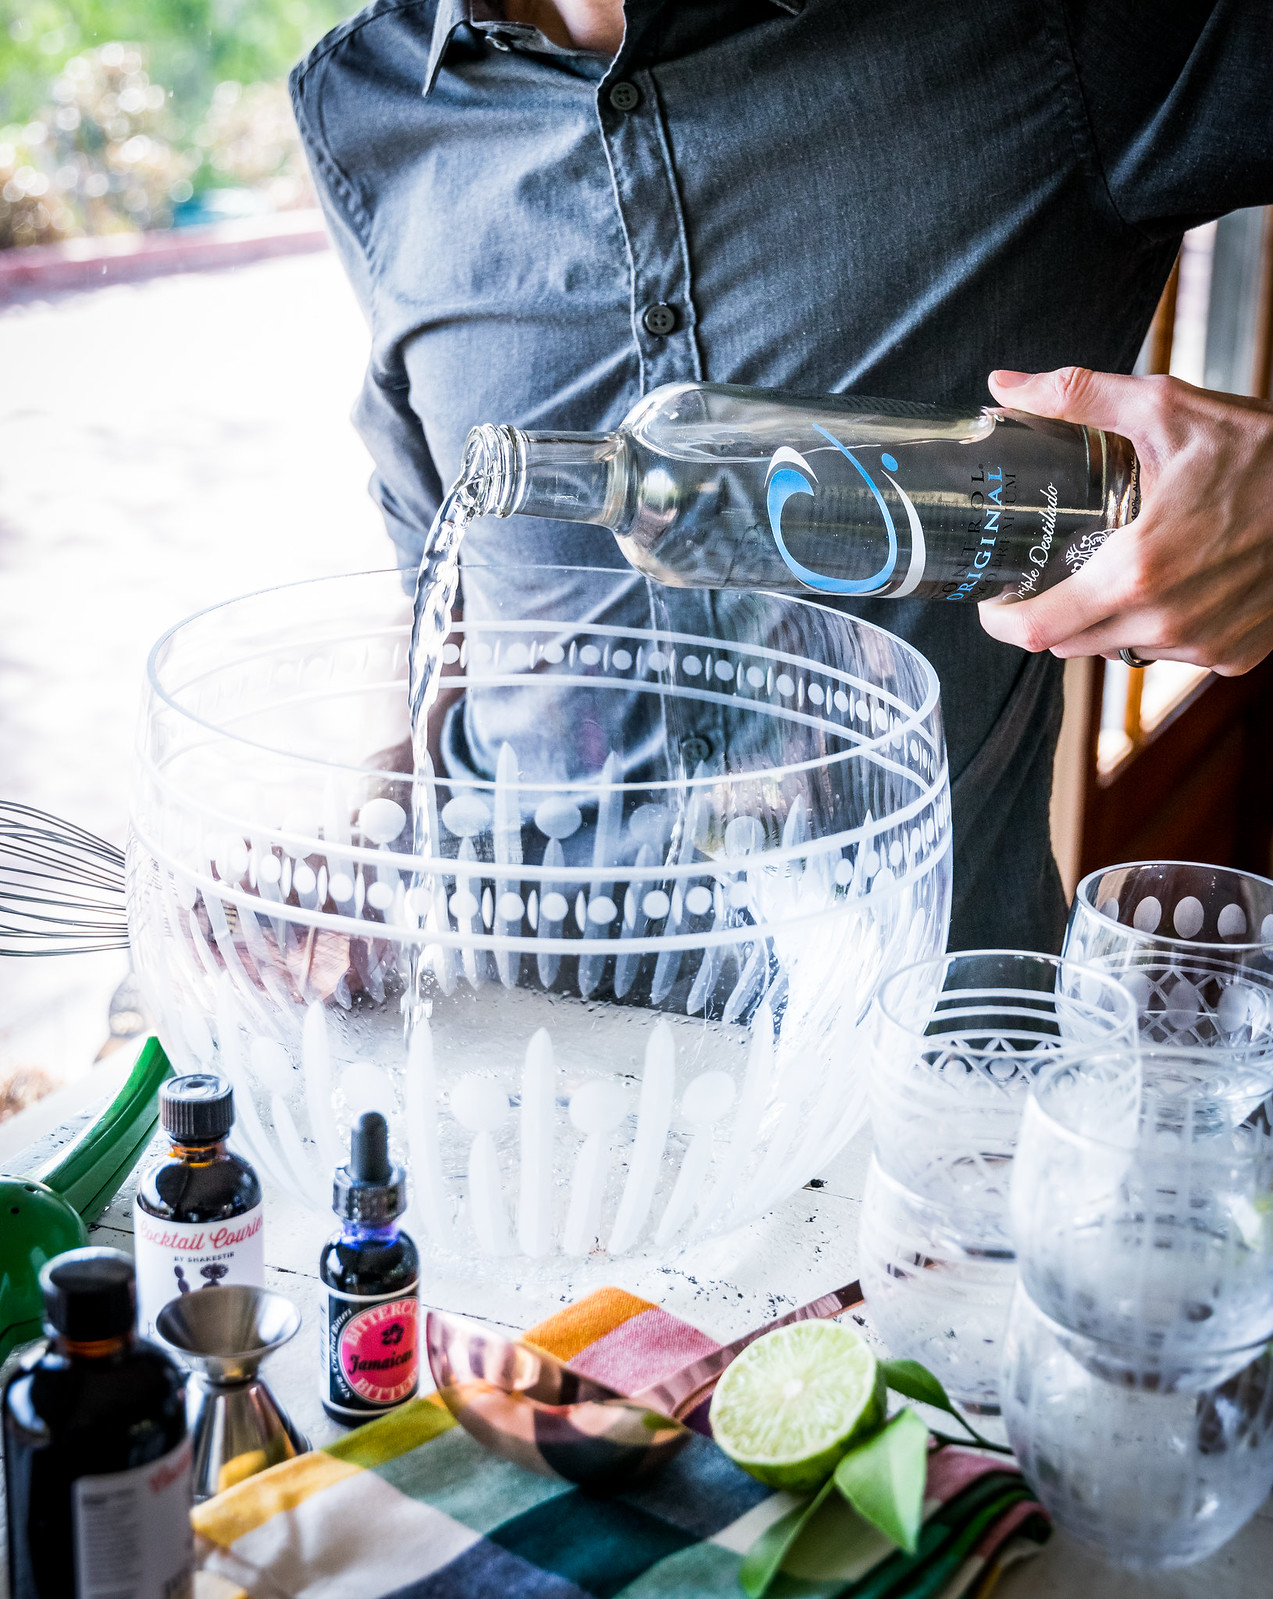 the punch uses an entire bottle of control c pisco